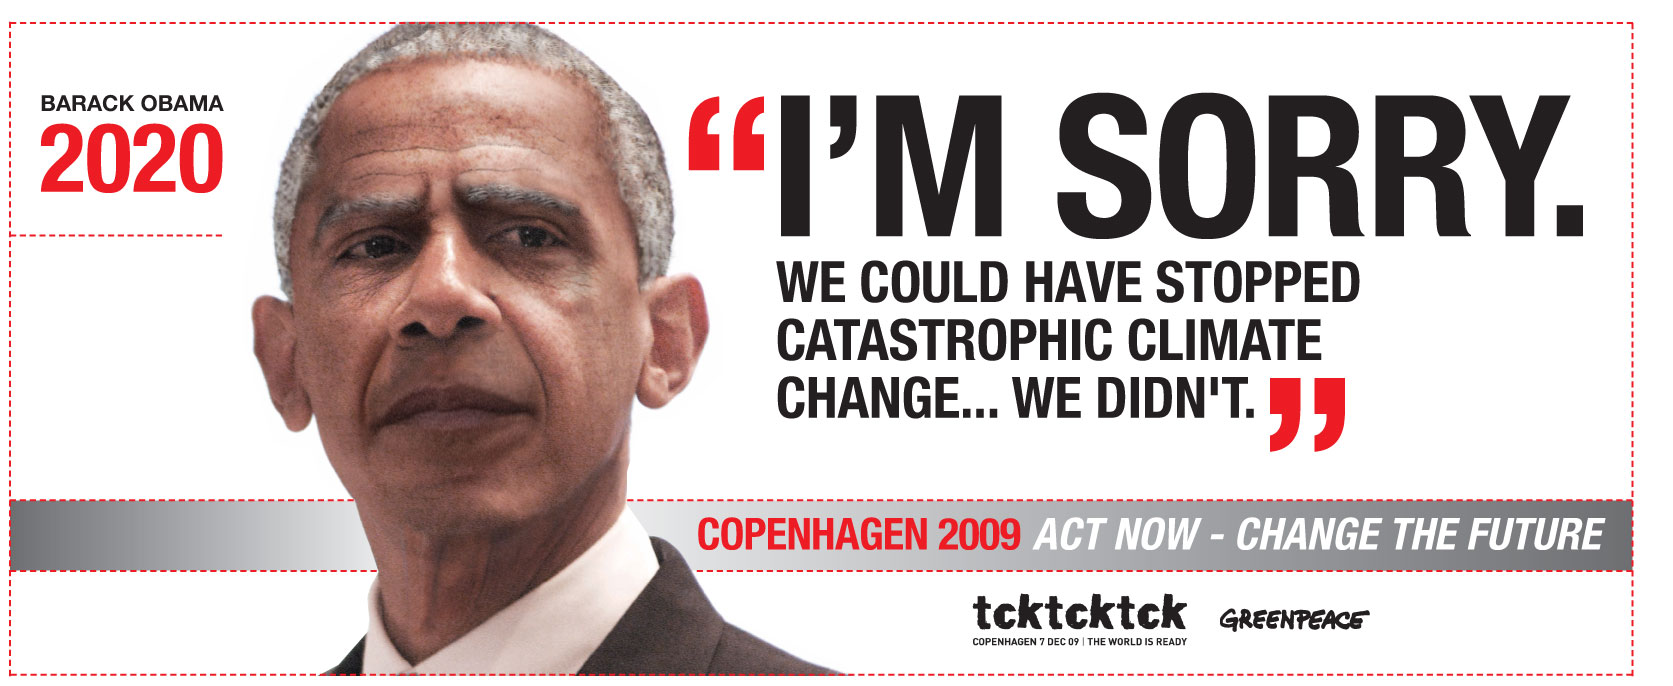 Greenpeace-sorry-obama in